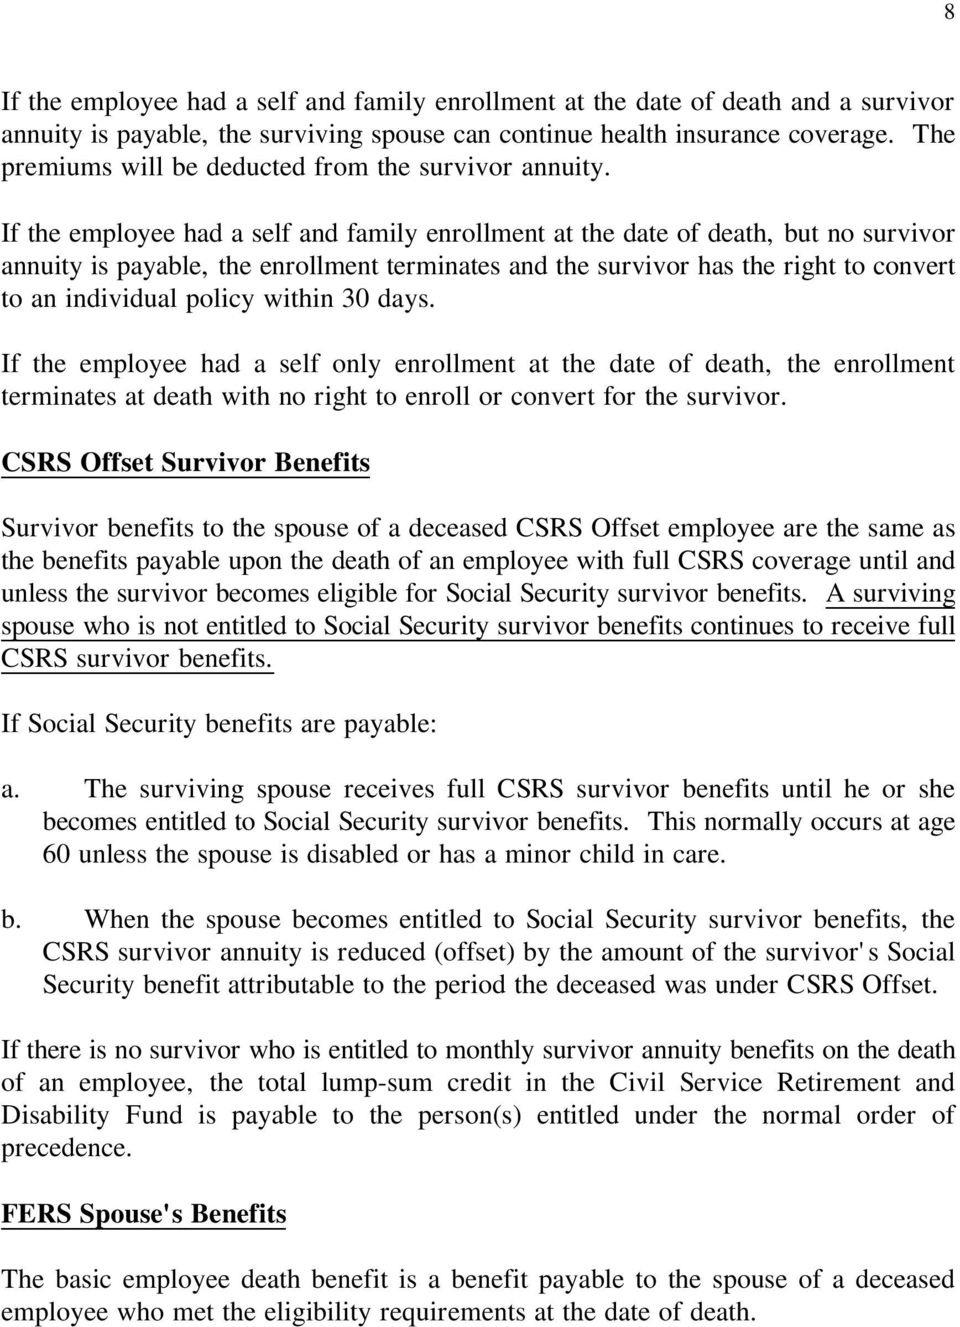 If the employee had a self and family enrollment at the date of death, but no survivor annuity is payable, the enrollment terminates and the survivor has the right to convert to an individual policy